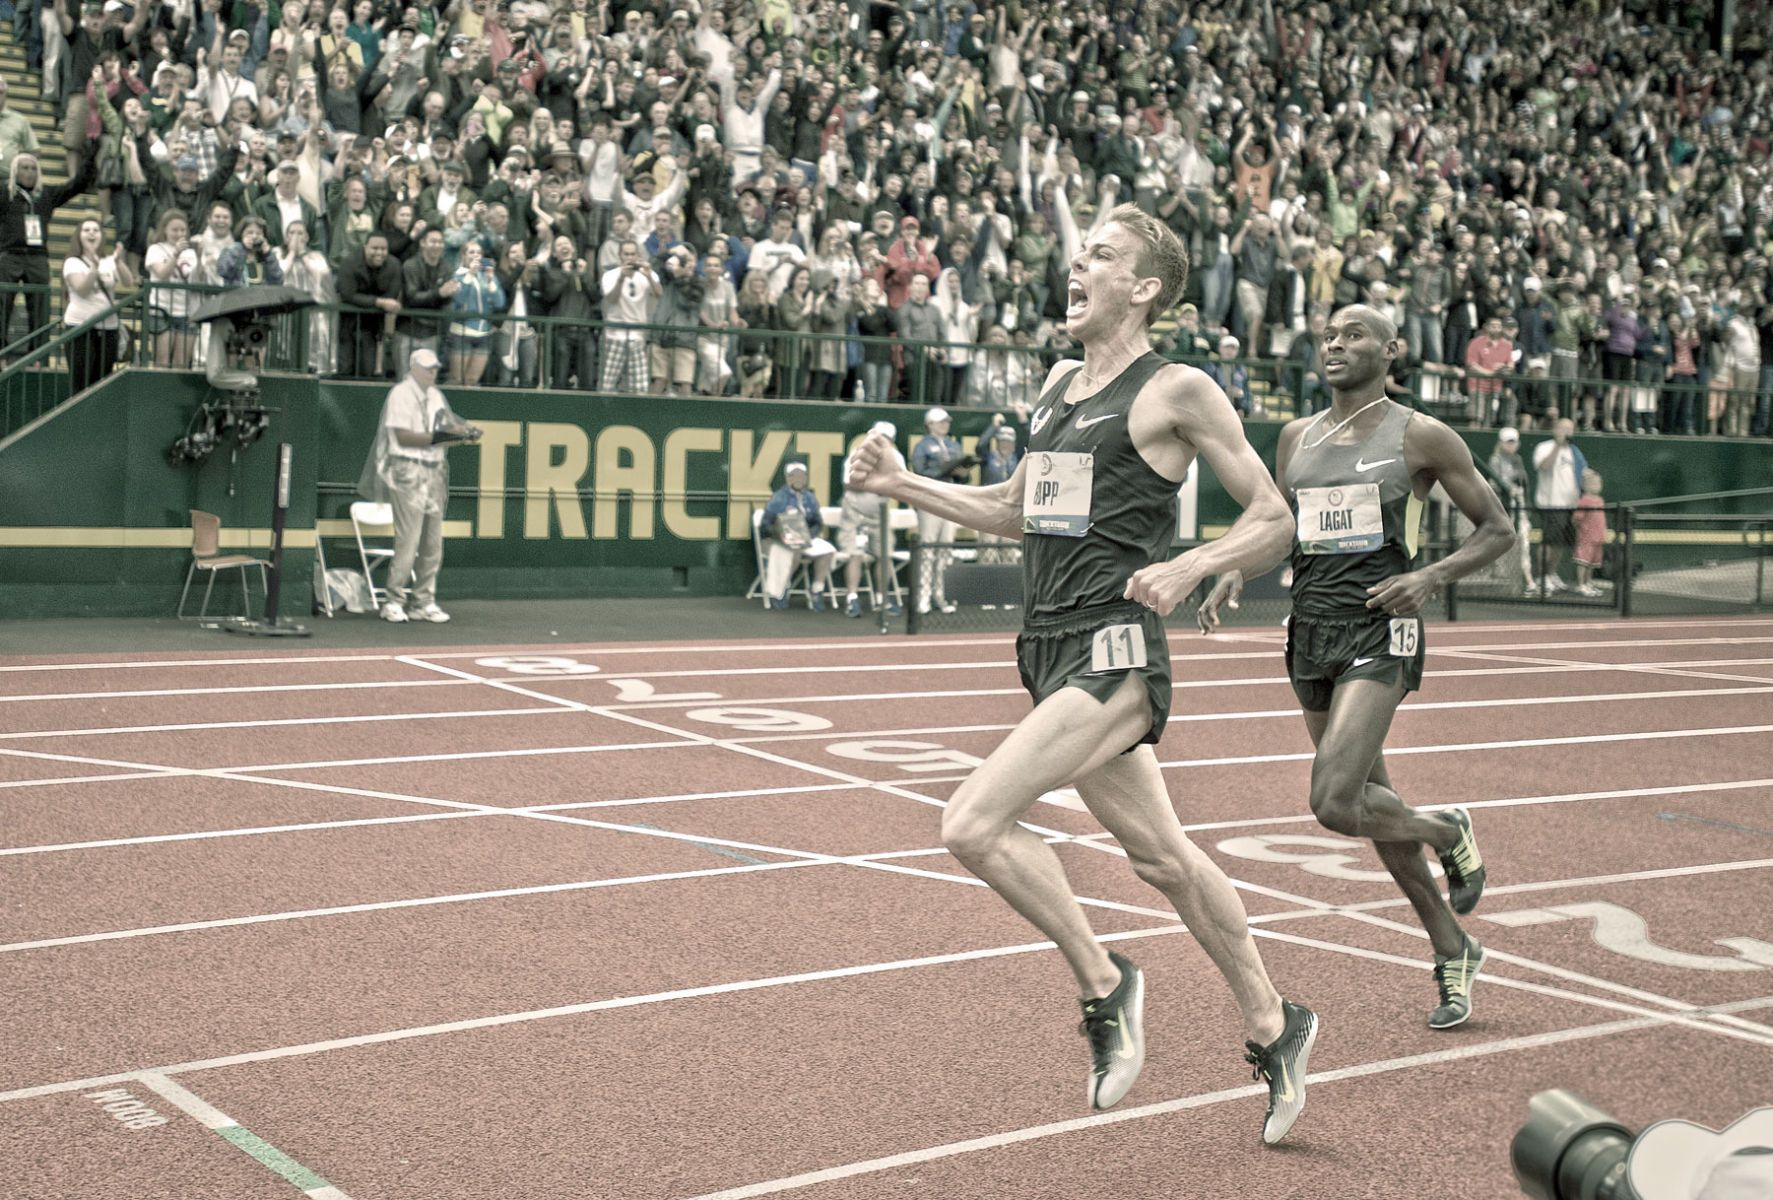 1ustrials2012_galen_rupp_10000_track_and_field_image_jeff_cohen_photography_lb.jpg